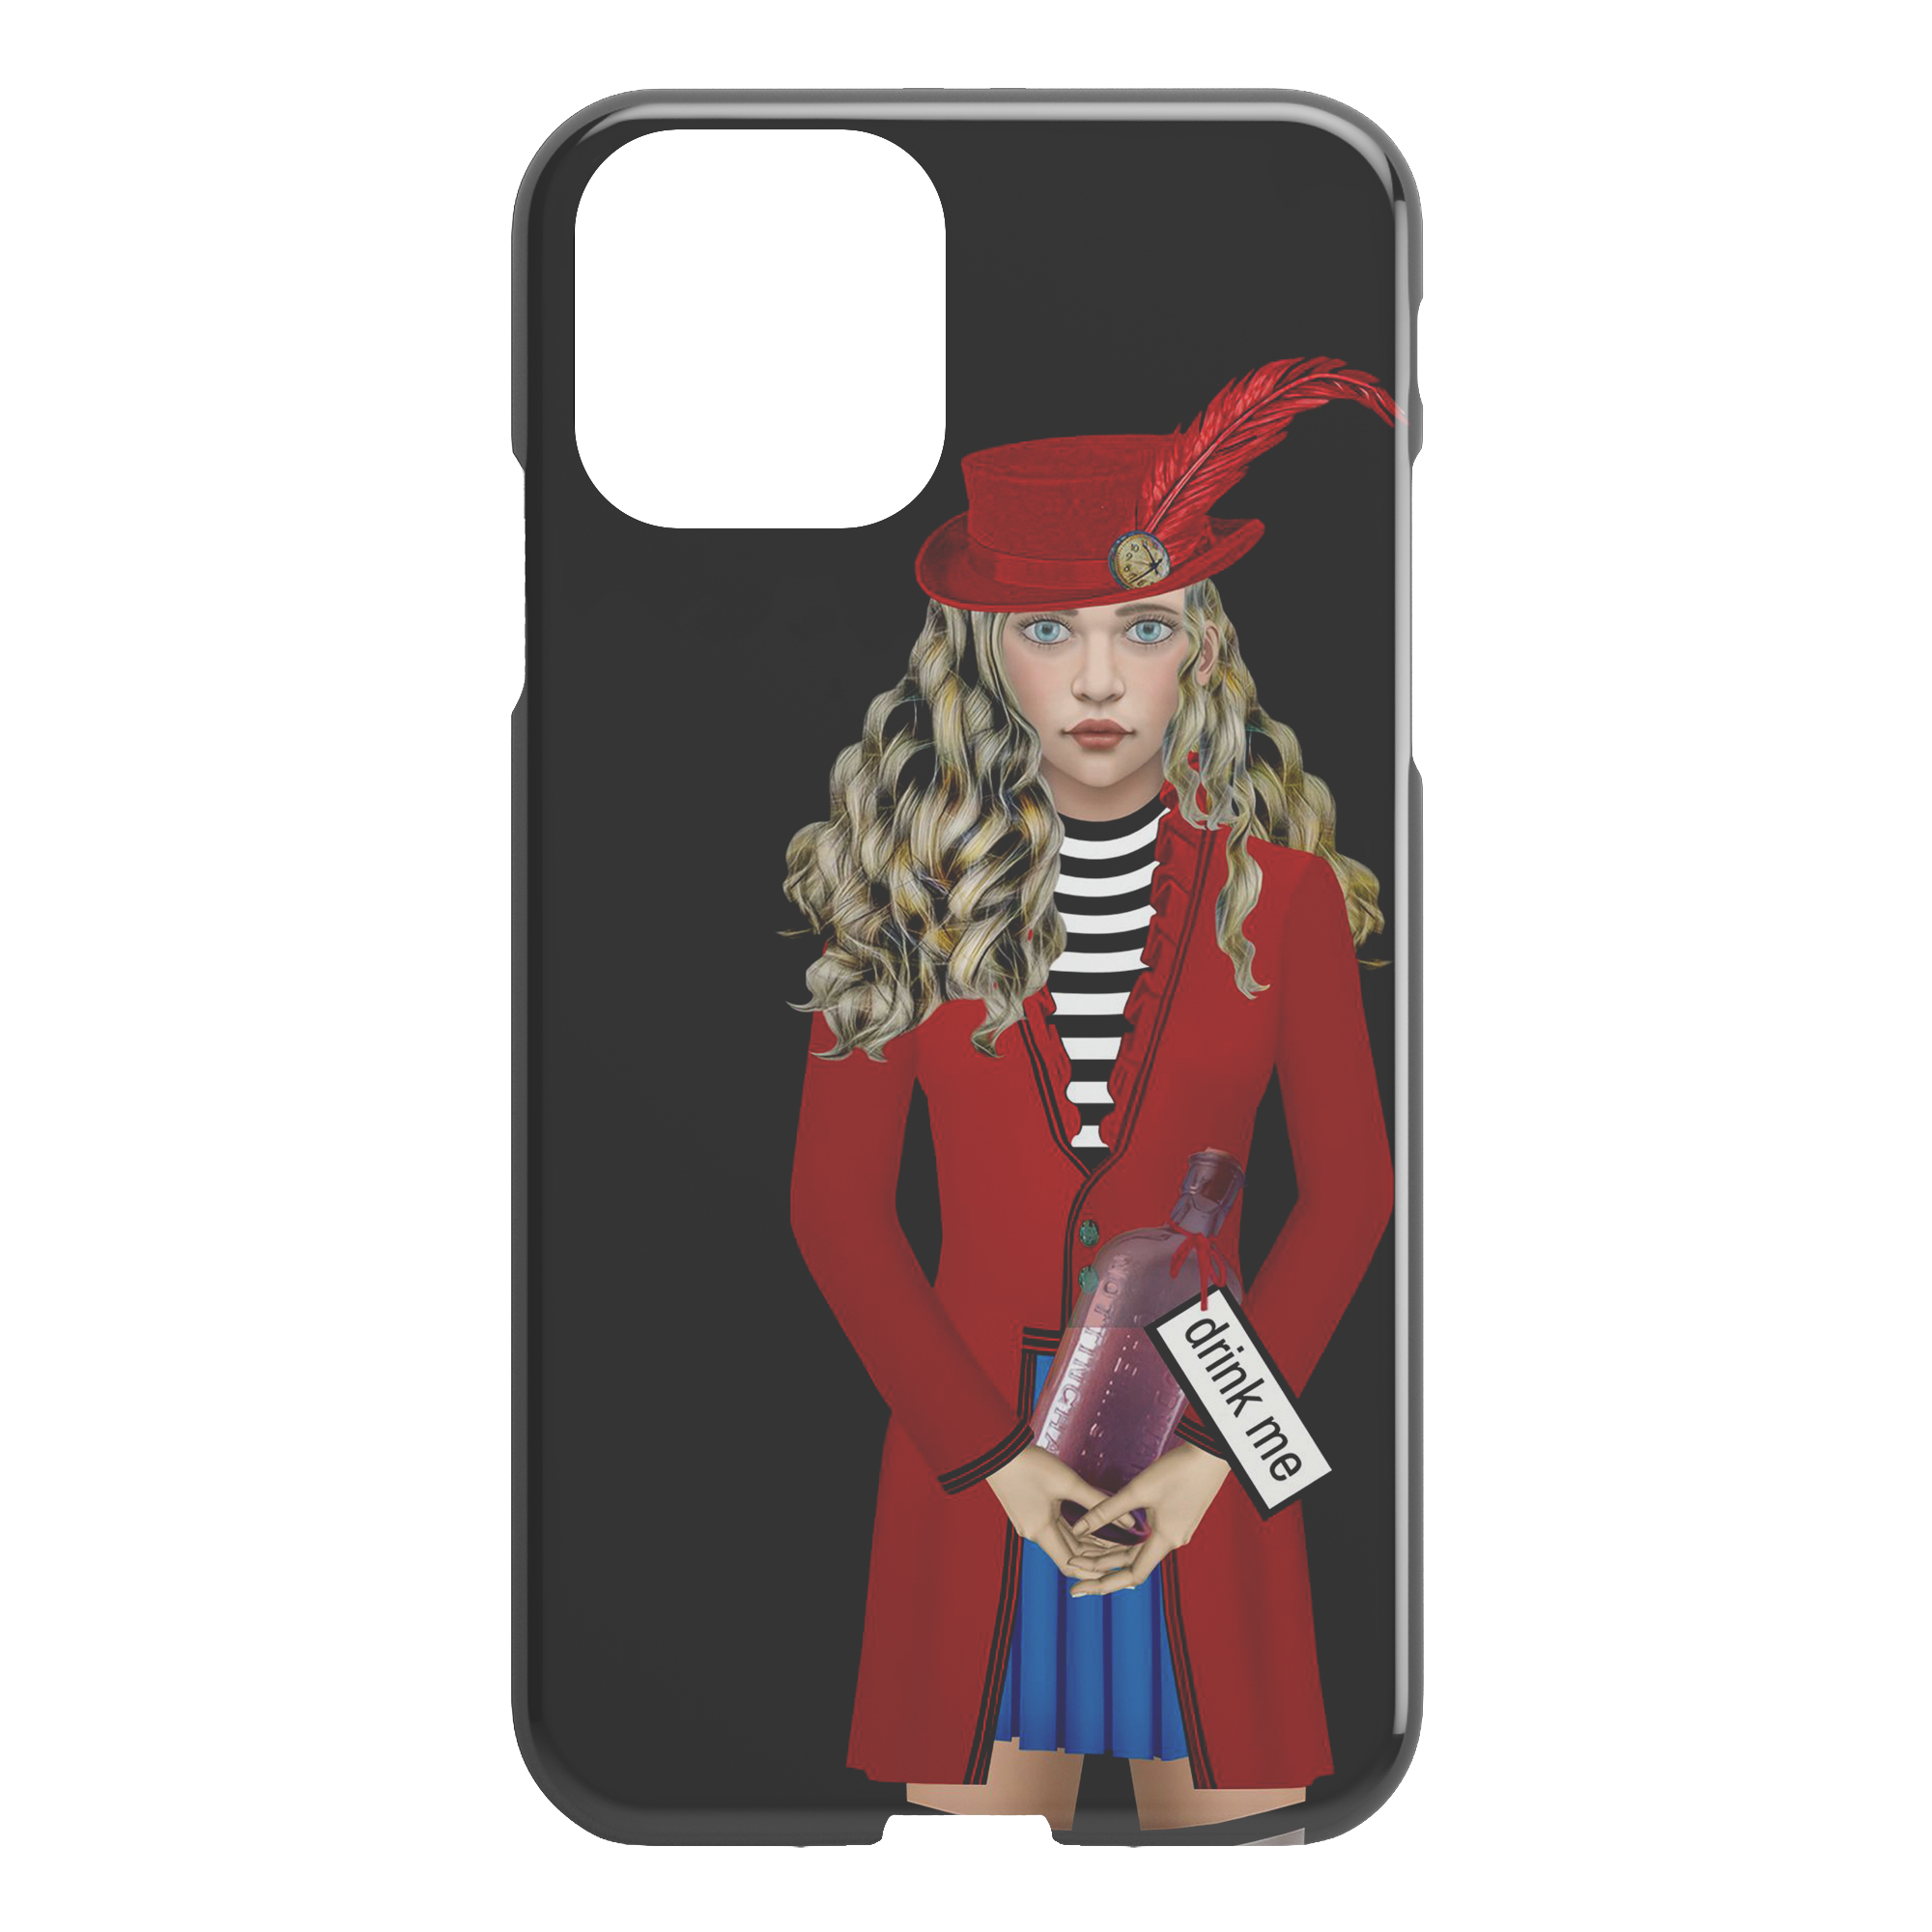 Alice 3 - iPhone case